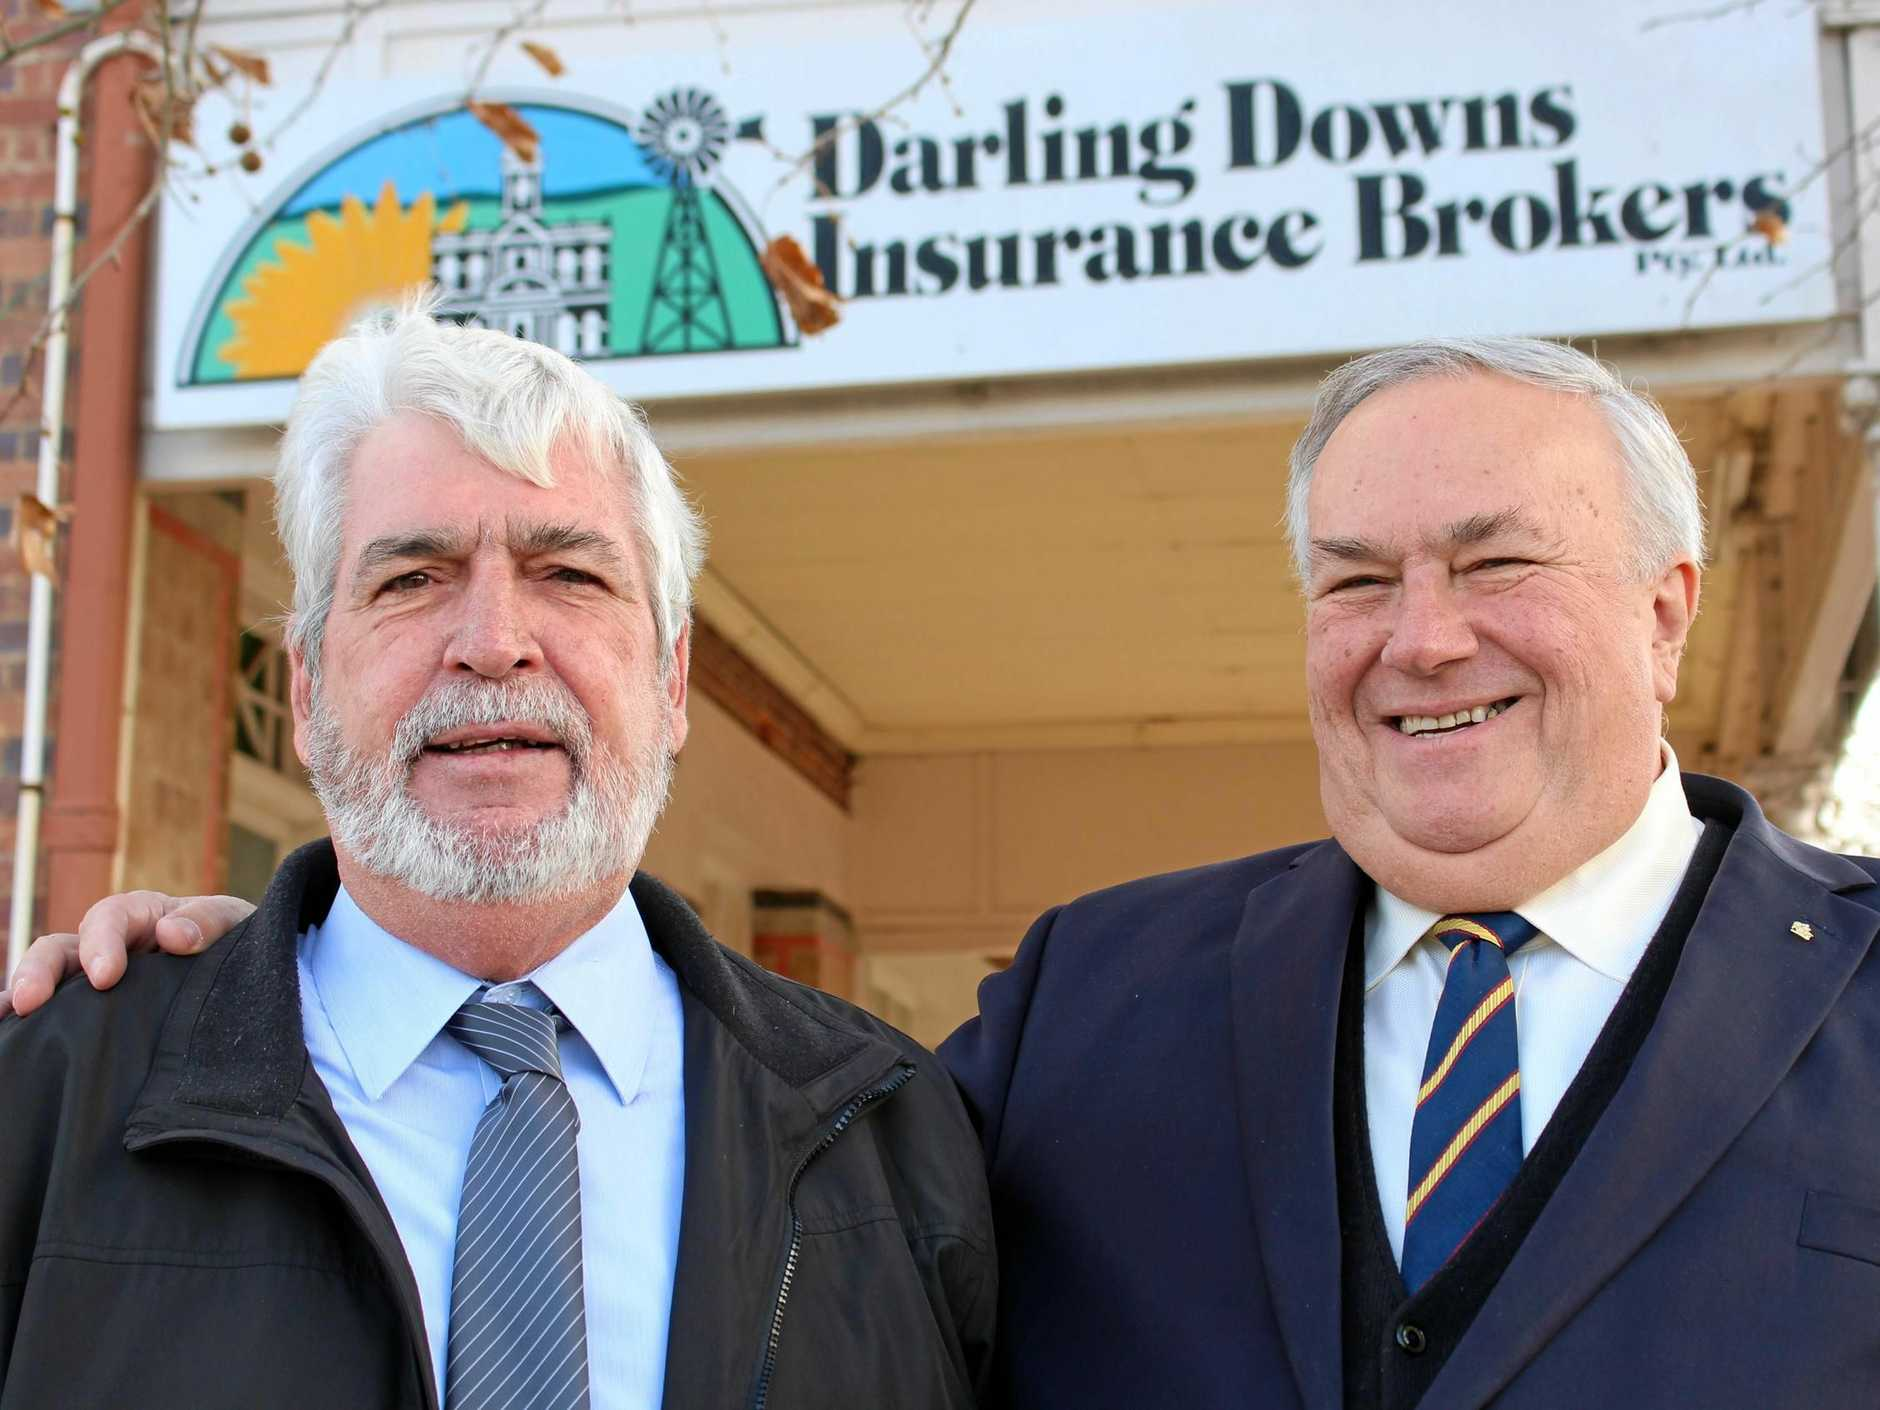 BROKERING BUDS: Peter McKenzie and Paul Munson went out on a limb to start Darling Downs Insurance Brokers 27 years ago but tomorrow they're saying goodbye to loyal clients from over the years as they both retire.